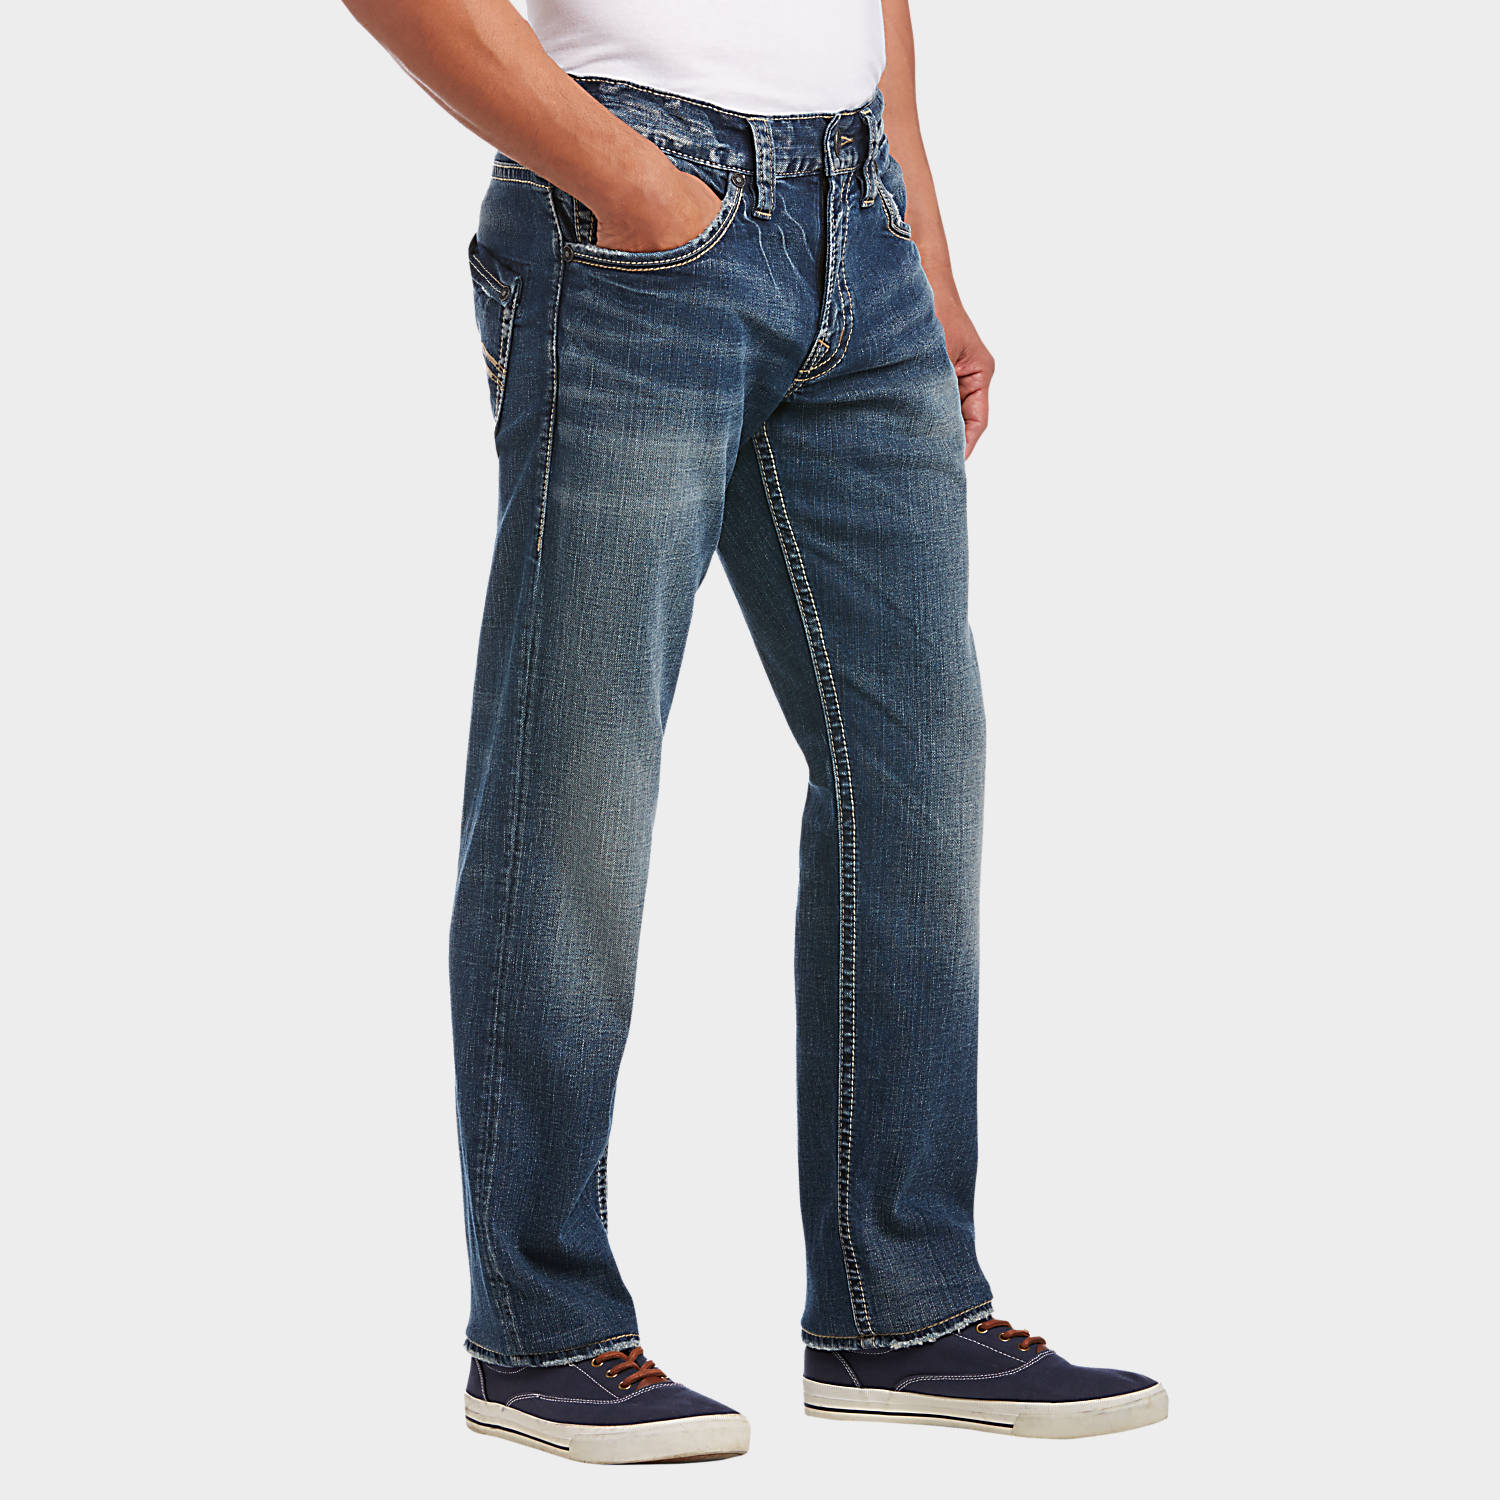 Silver Jeans Co. - Shop online for Silver Jeans Co. men's clothing ...